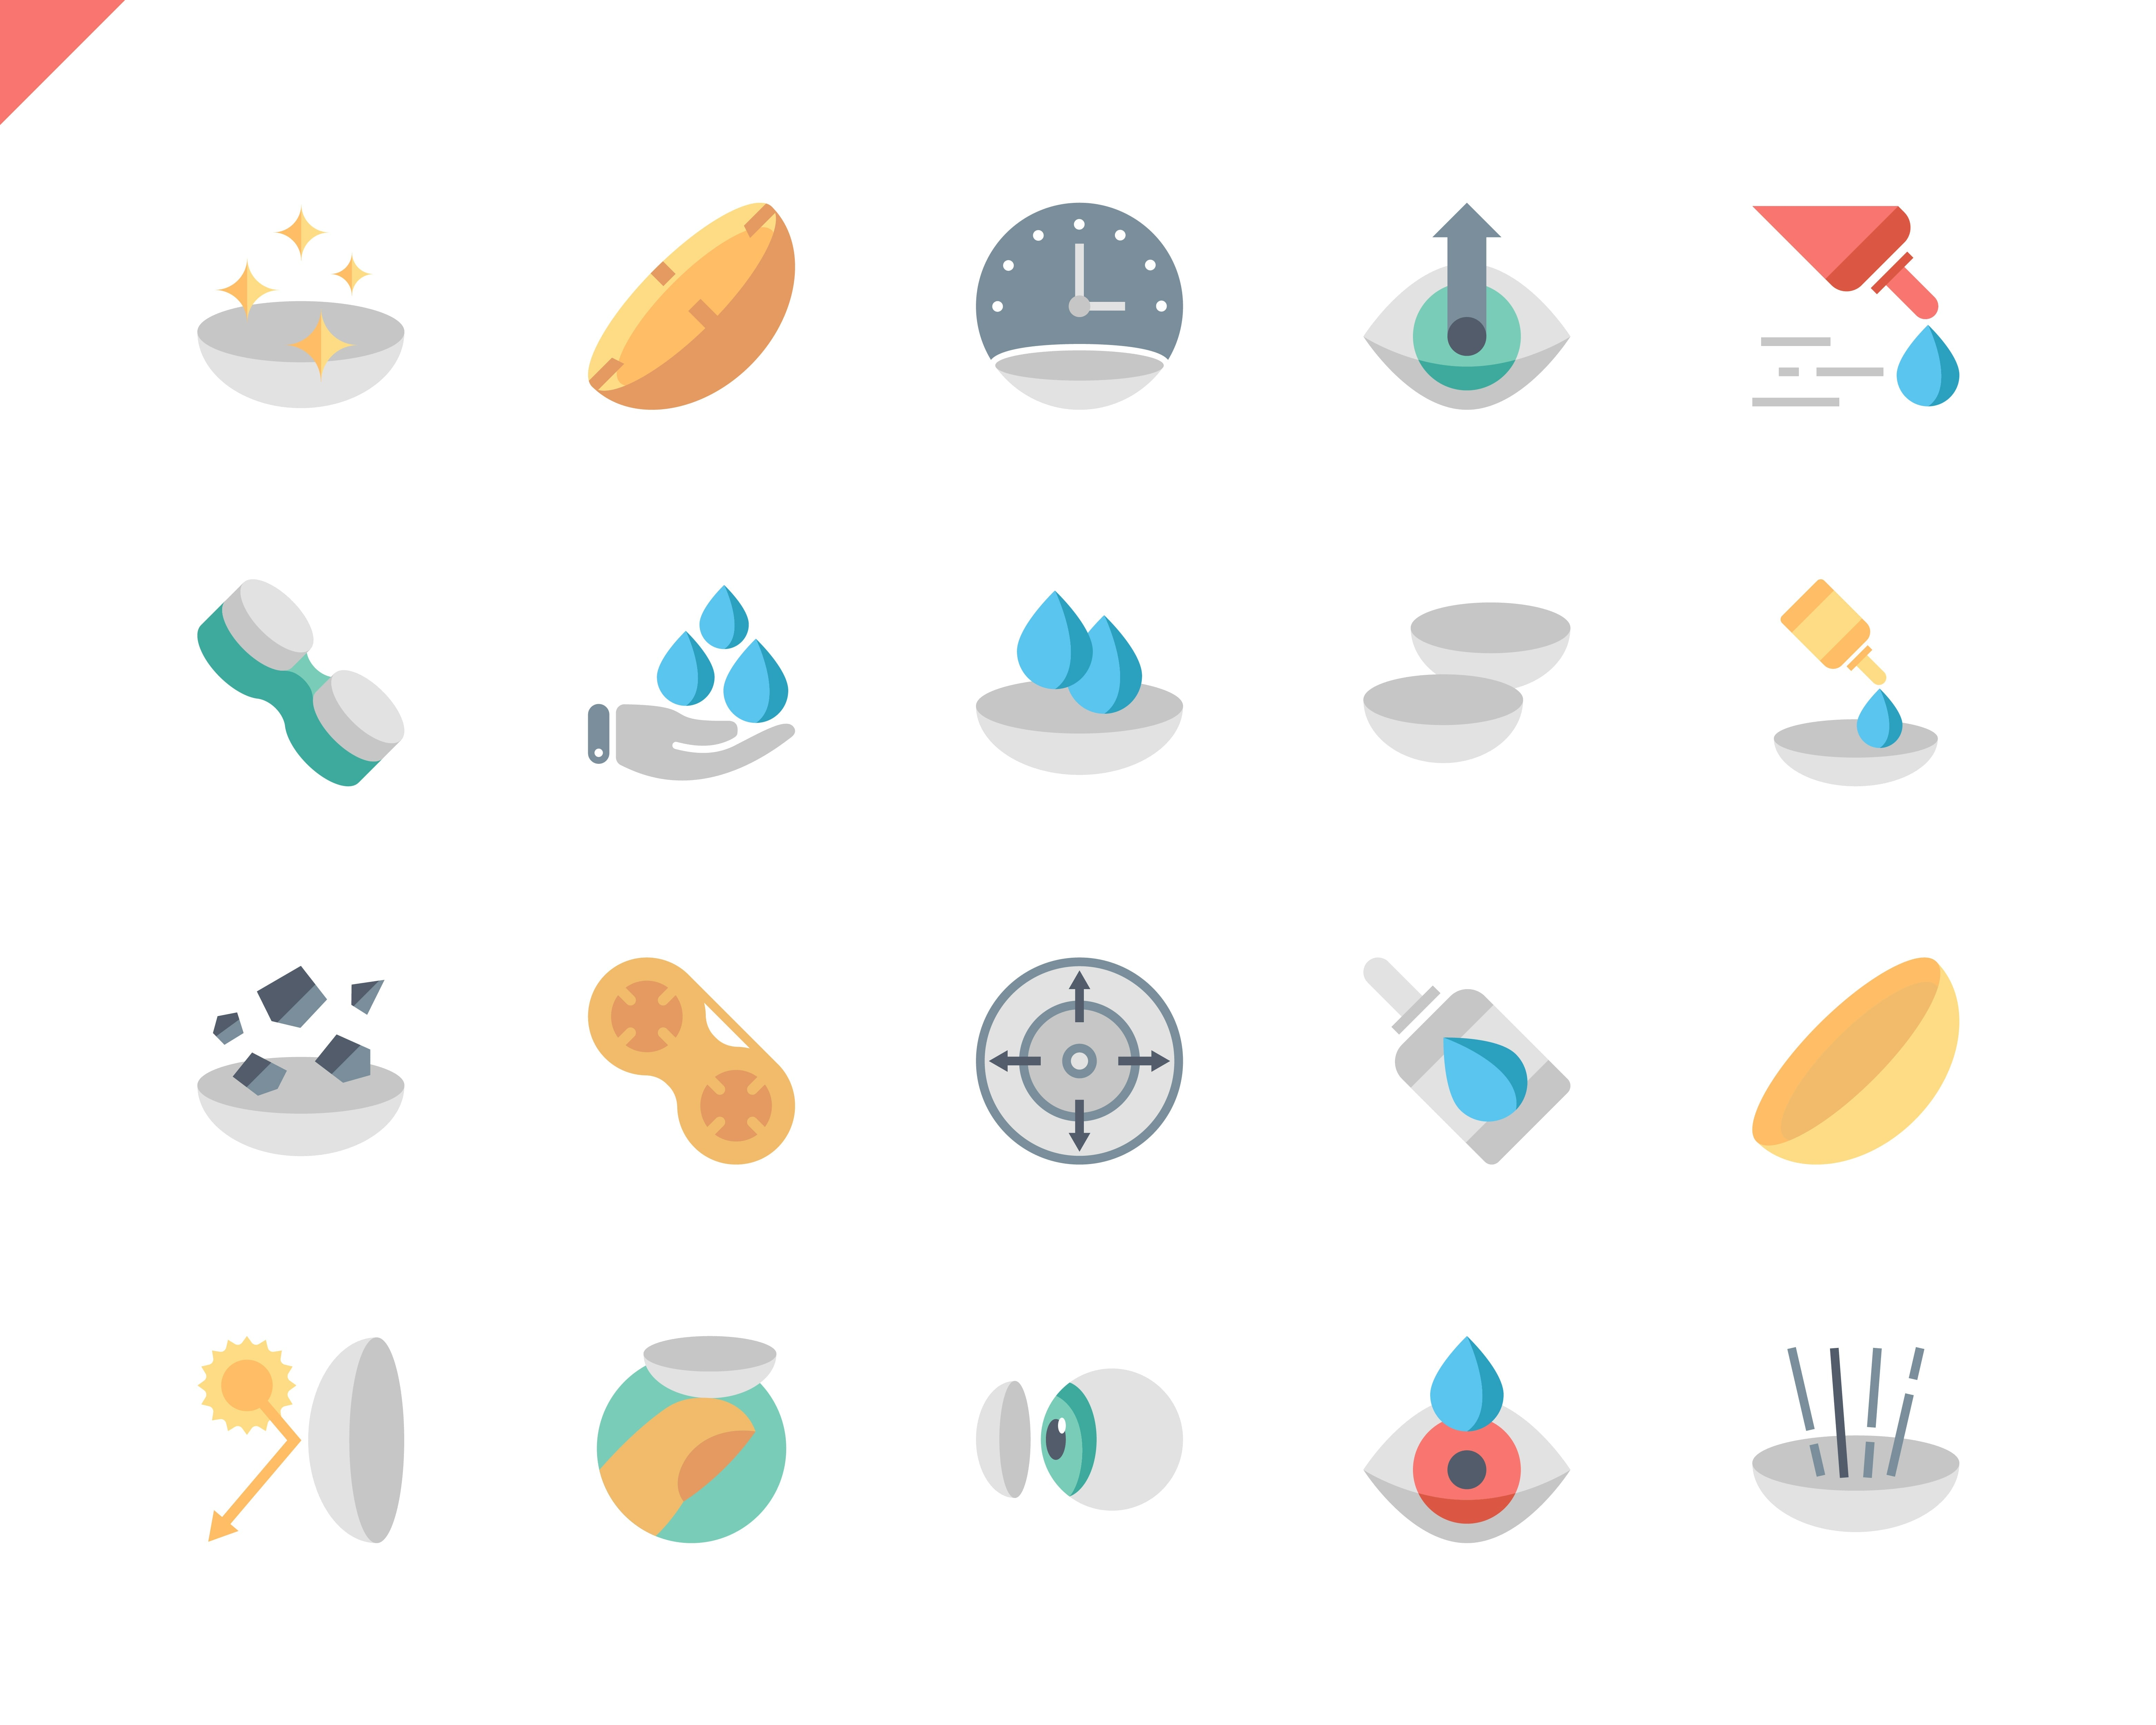 Simple Set Eye Lens Flat Icons for Website and Mobile Apps. Contains such Icons as Lenses, Protection Container, Eyedropper, Medicine. 48x48 Pixel Perfect. Vector illustration.